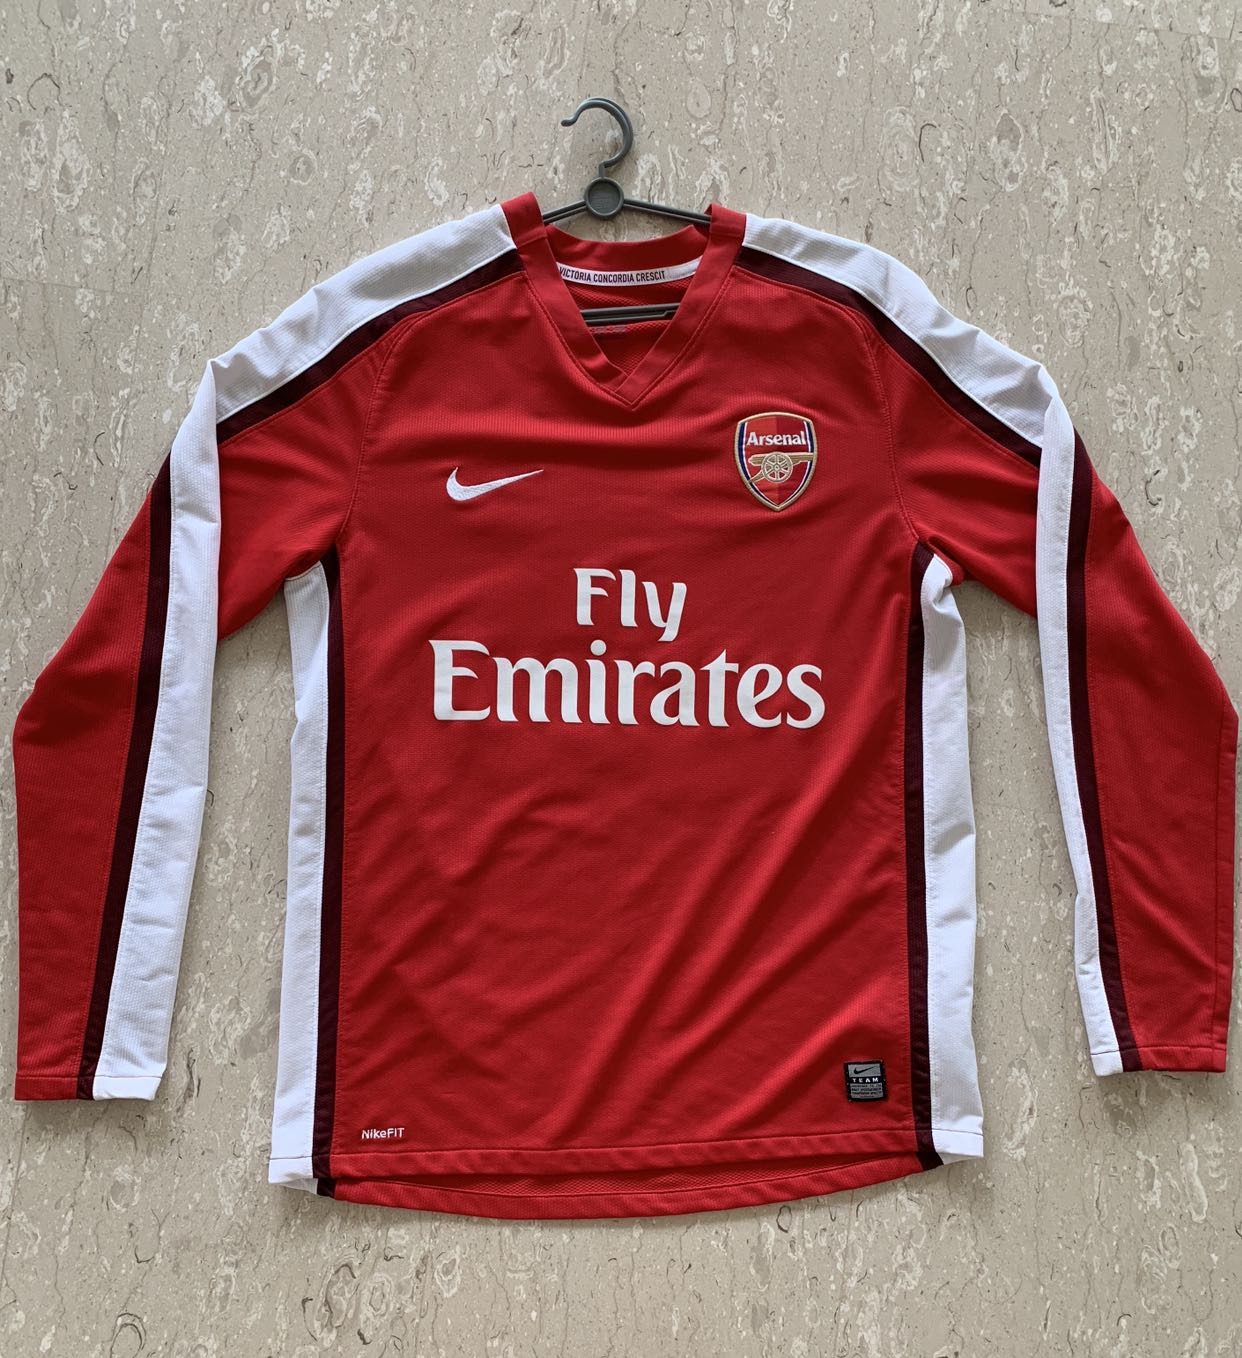 premium selection 53186 bdd6d Arsenal Nike Jersey 09/10 (Adebayor) Size M, Sports, Sports ...